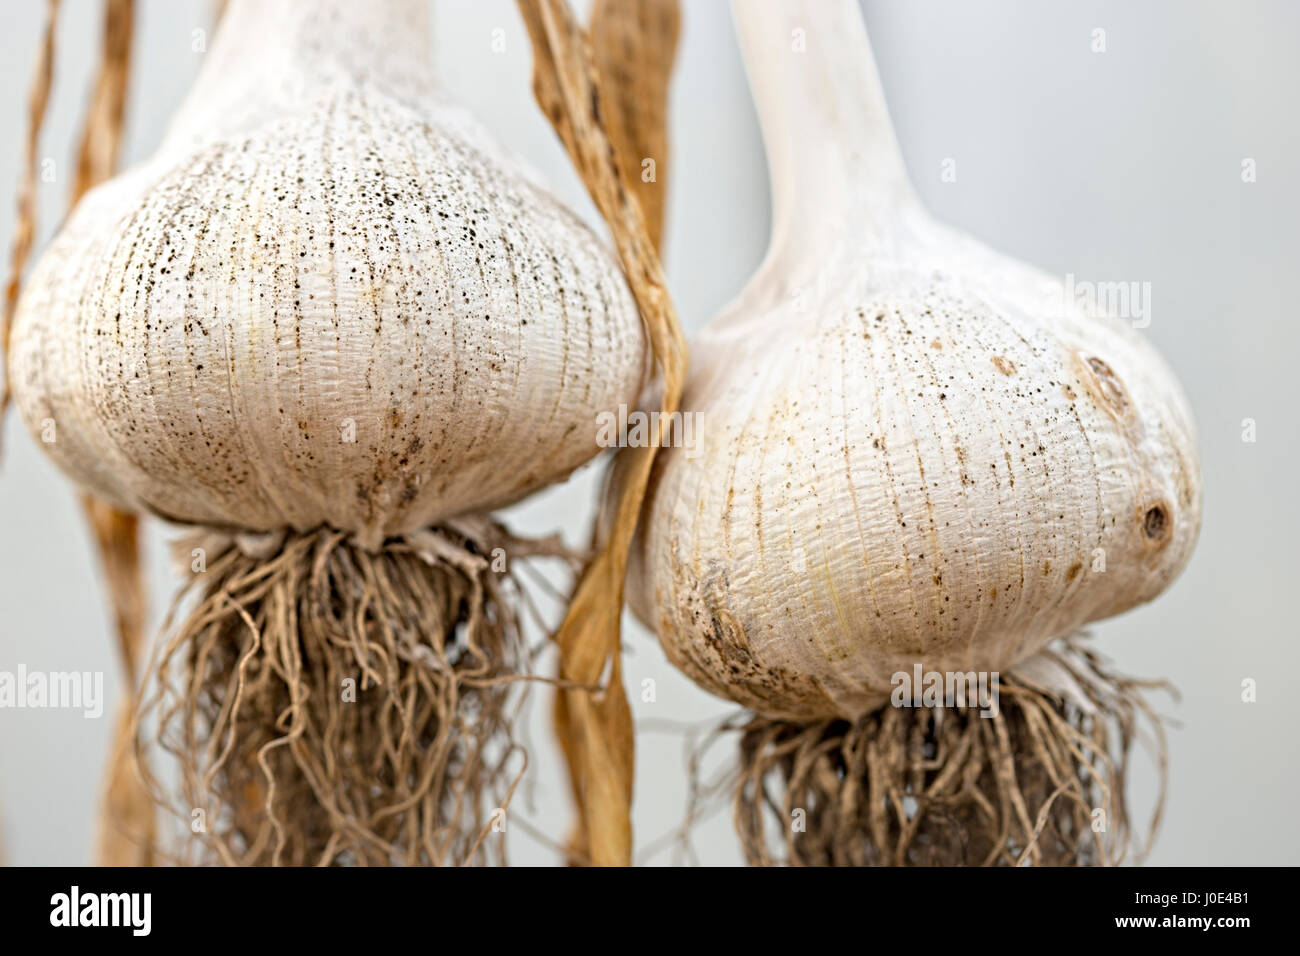 Elephant garlic - Stock Image